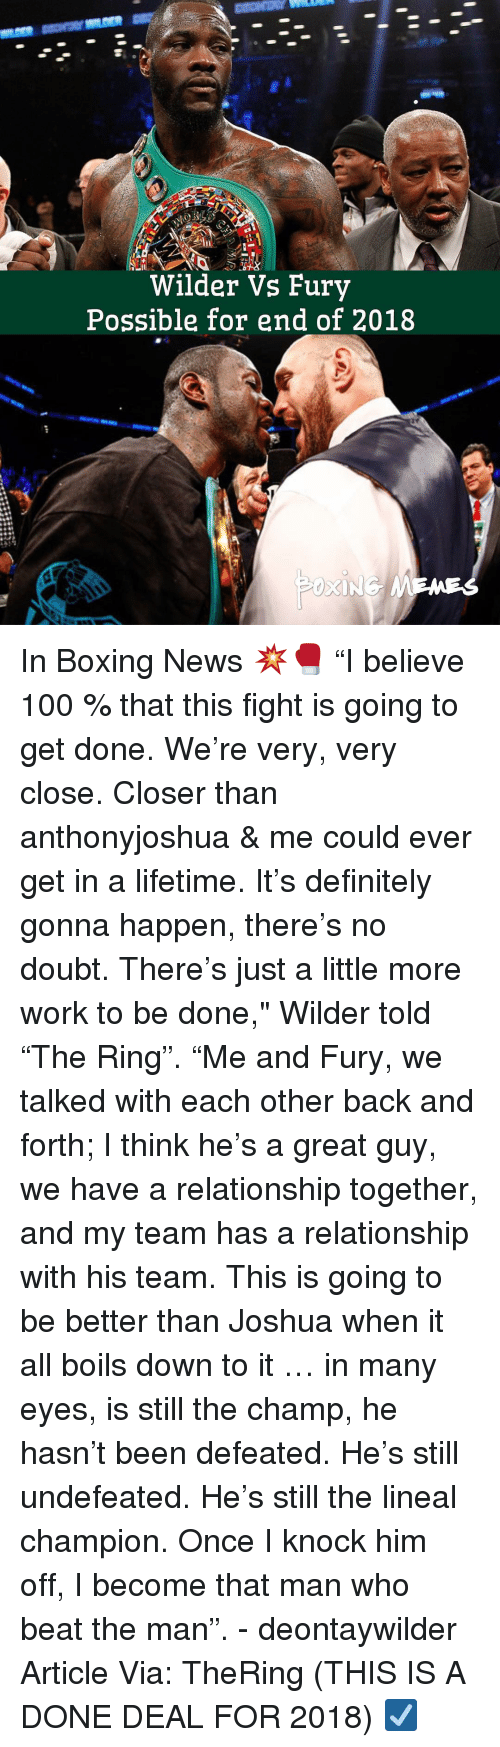 "Anaconda, Boxing, and Definitely: Wilder Vs Fury  Possible for end of 2018 In Boxing News 💥🥊 ""I believe 100 % that this fight is going to get done. We're very, very close. Closer than anthonyjoshua & me could ever get in a lifetime. It's definitely gonna happen, there's no doubt. There's just a little more work to be done,"" Wilder told ""The Ring"". ""Me and Fury, we talked with each other back and forth; I think he's a great guy, we have a relationship together, and my team has a relationship with his team. This is going to be better than Joshua when it all boils down to it … in many eyes, is still the champ, he hasn't been defeated. He's still undefeated. He's still the lineal champion. Once I knock him off, I become that man who beat the man"". - deontaywilder Article Via: TheRing (THIS IS A DONE DEAL FOR 2018) ☑️"